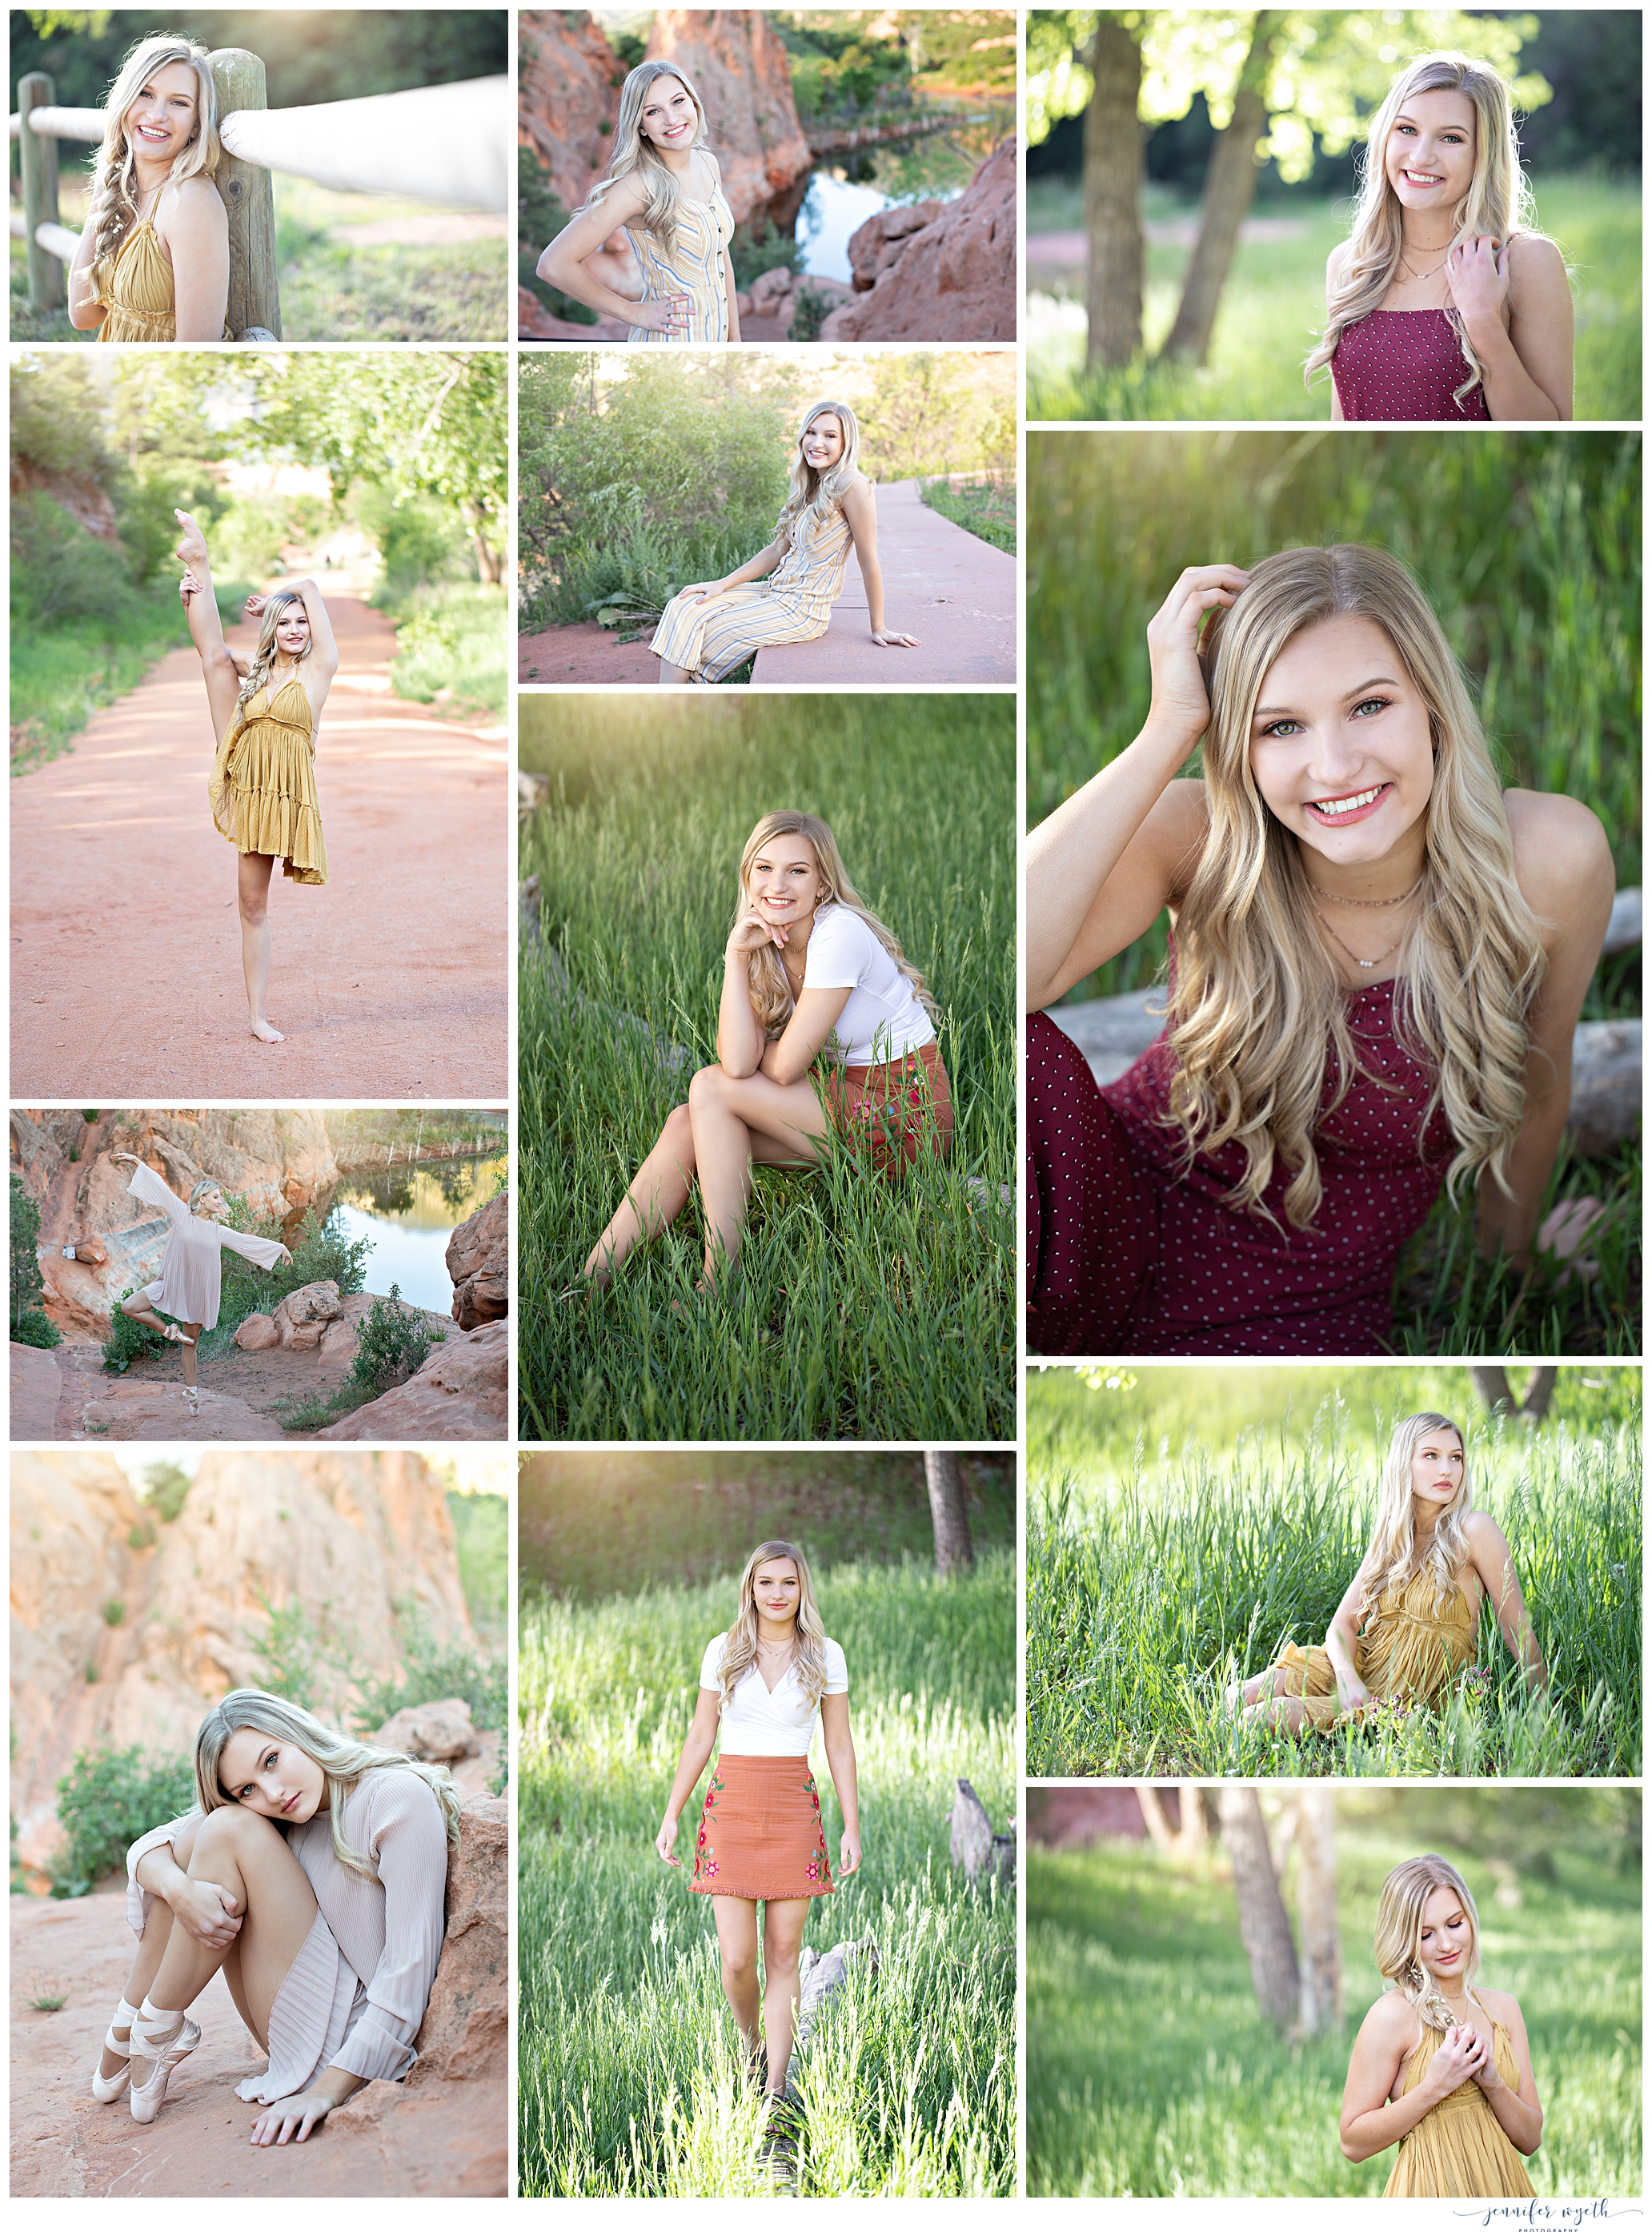 Jennifer-Wyeth-photography-senior-pictures-colorado-springs-photographer_0308.jpg